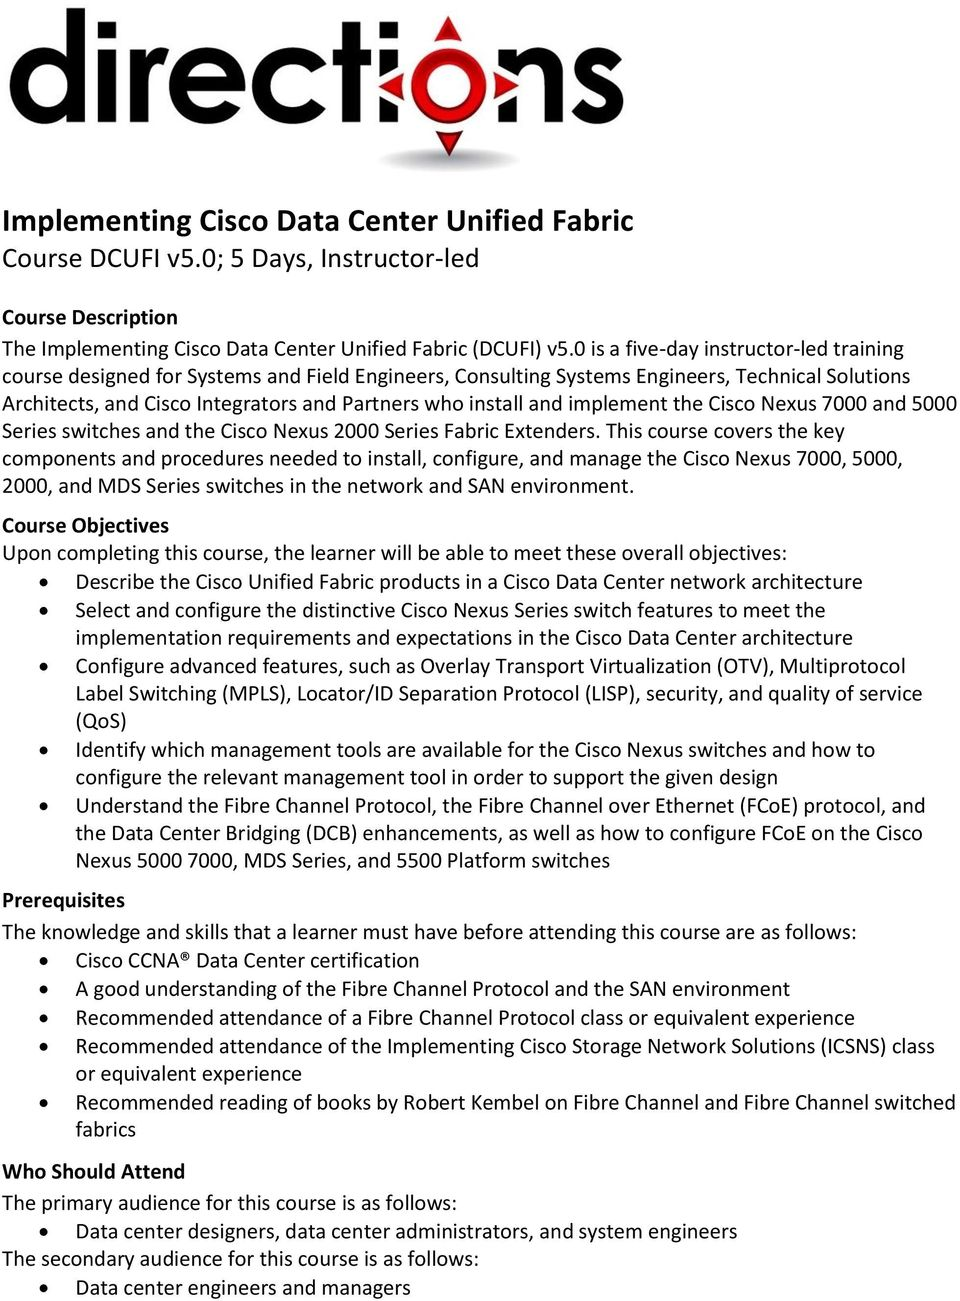 and implement the Cisco Nexus 7000 and 5000 Series switches and the Cisco Nexus 2000 Series Fabric Extenders.